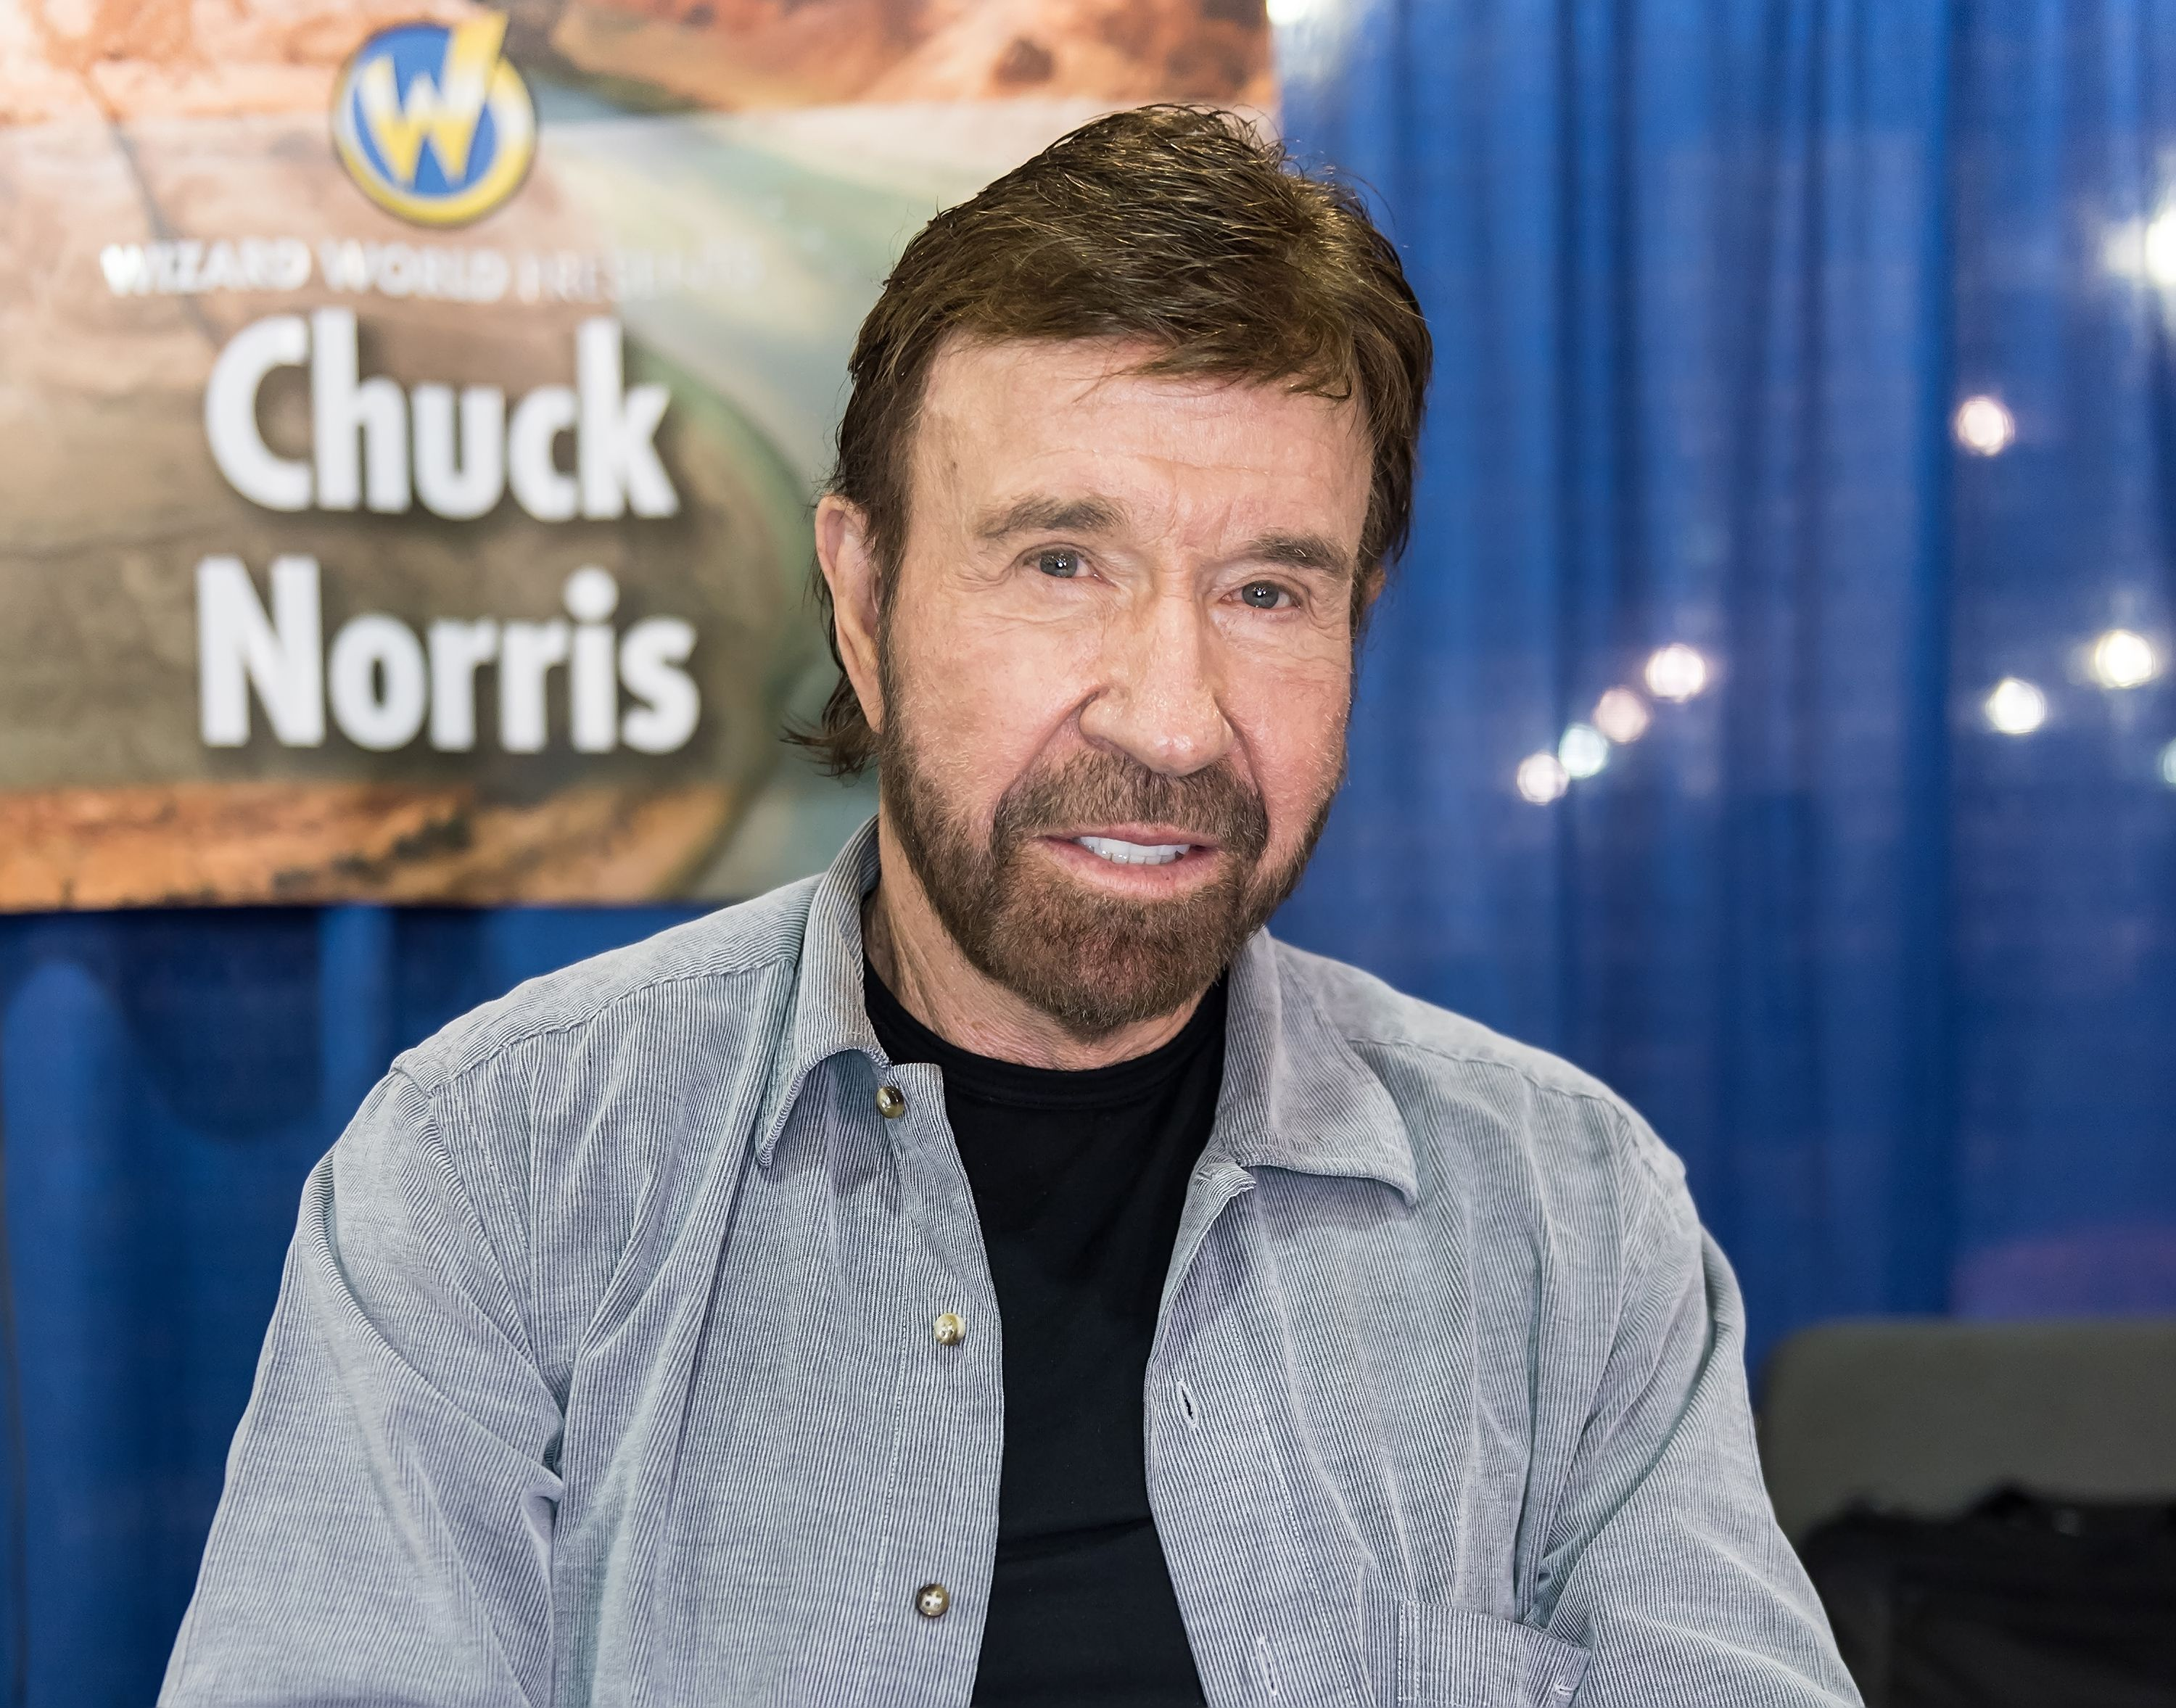 Chuck Norris make his Wizard World Comic Con debut during Wizard World Comic Con Philadelphia 2017 - Day 3 at Pennsylvania Convention Center on June 3, 2017 in Philadelphia, Pennsylvania. | Source: Getty Images